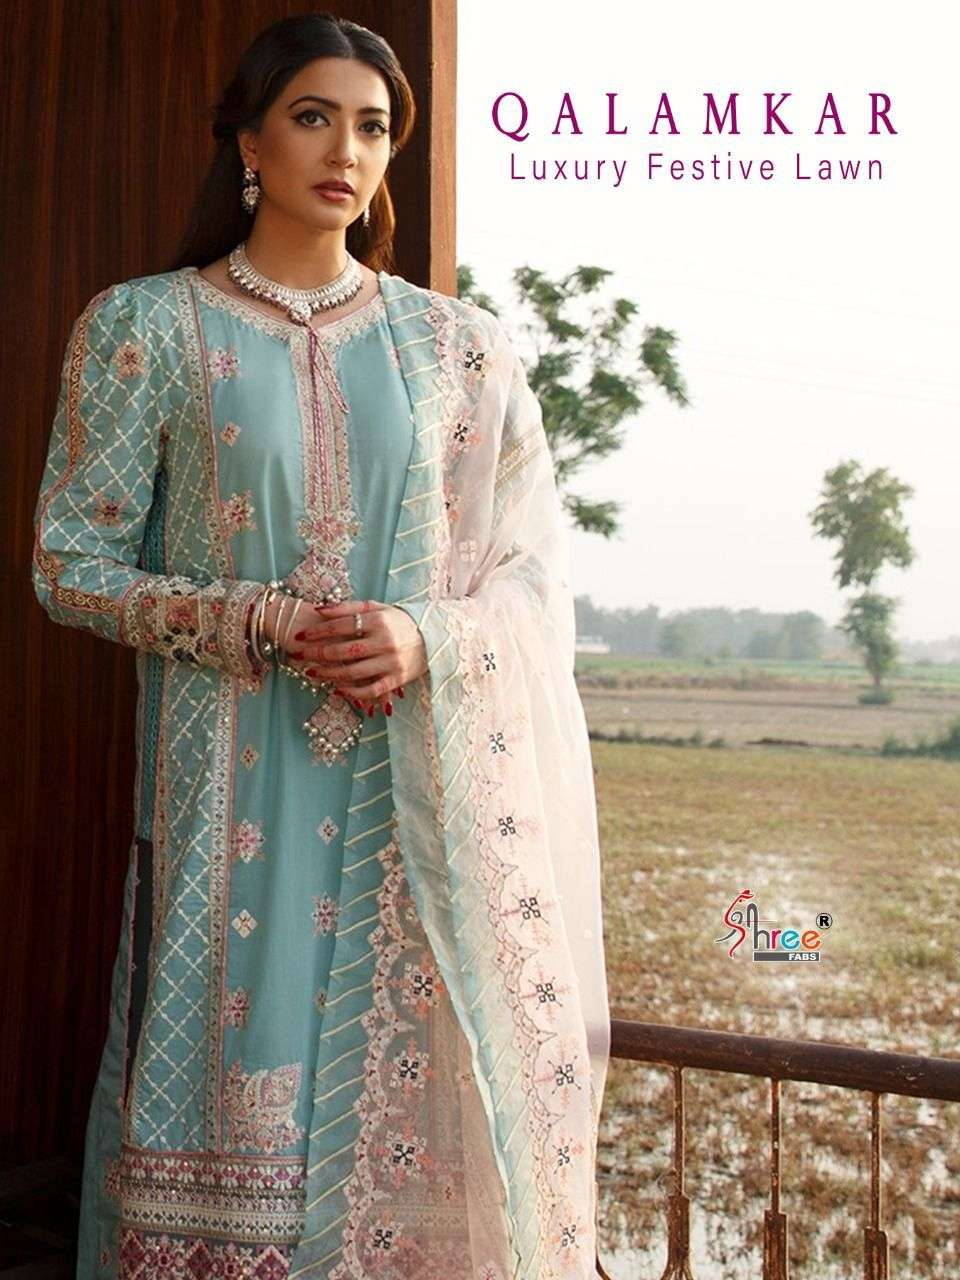 SHREE FAB QALAMKAR LUXURY FESTIVAL LAWN DESIGNER PURE LAWN WITH EXCLUSIVE EMBROIDERY WORK PAKISTANI PATTERN SUITS WHOLESALE